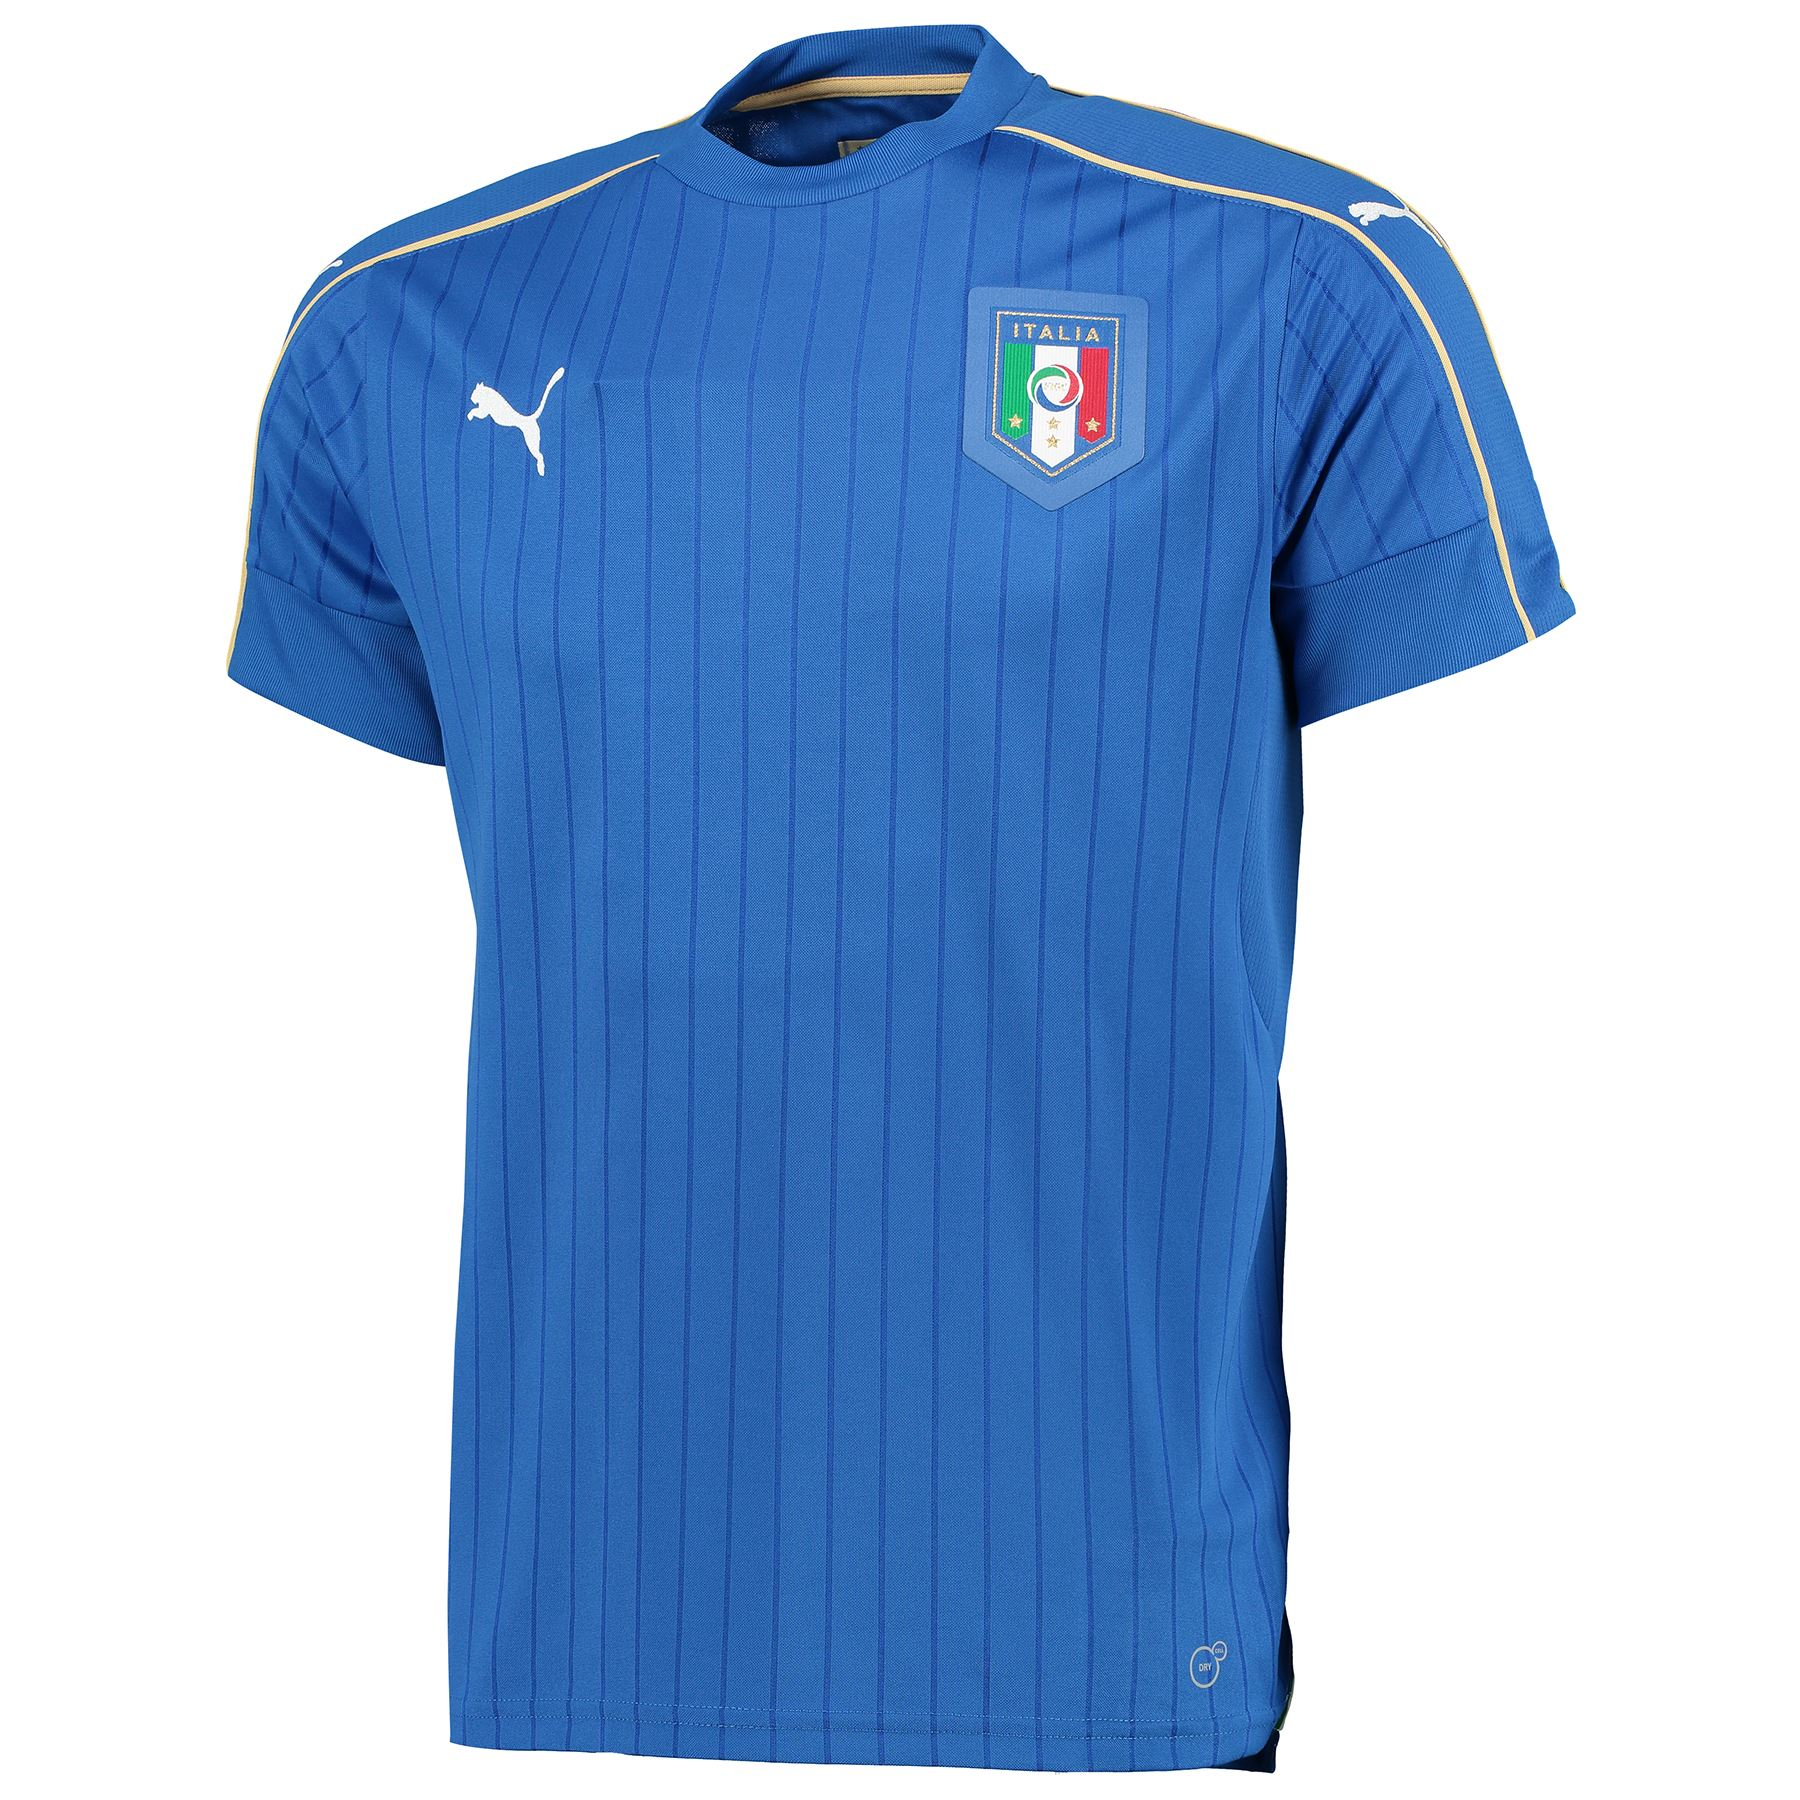 gents football soccer italy national team home shirt 2016 blue ebay. Black Bedroom Furniture Sets. Home Design Ideas